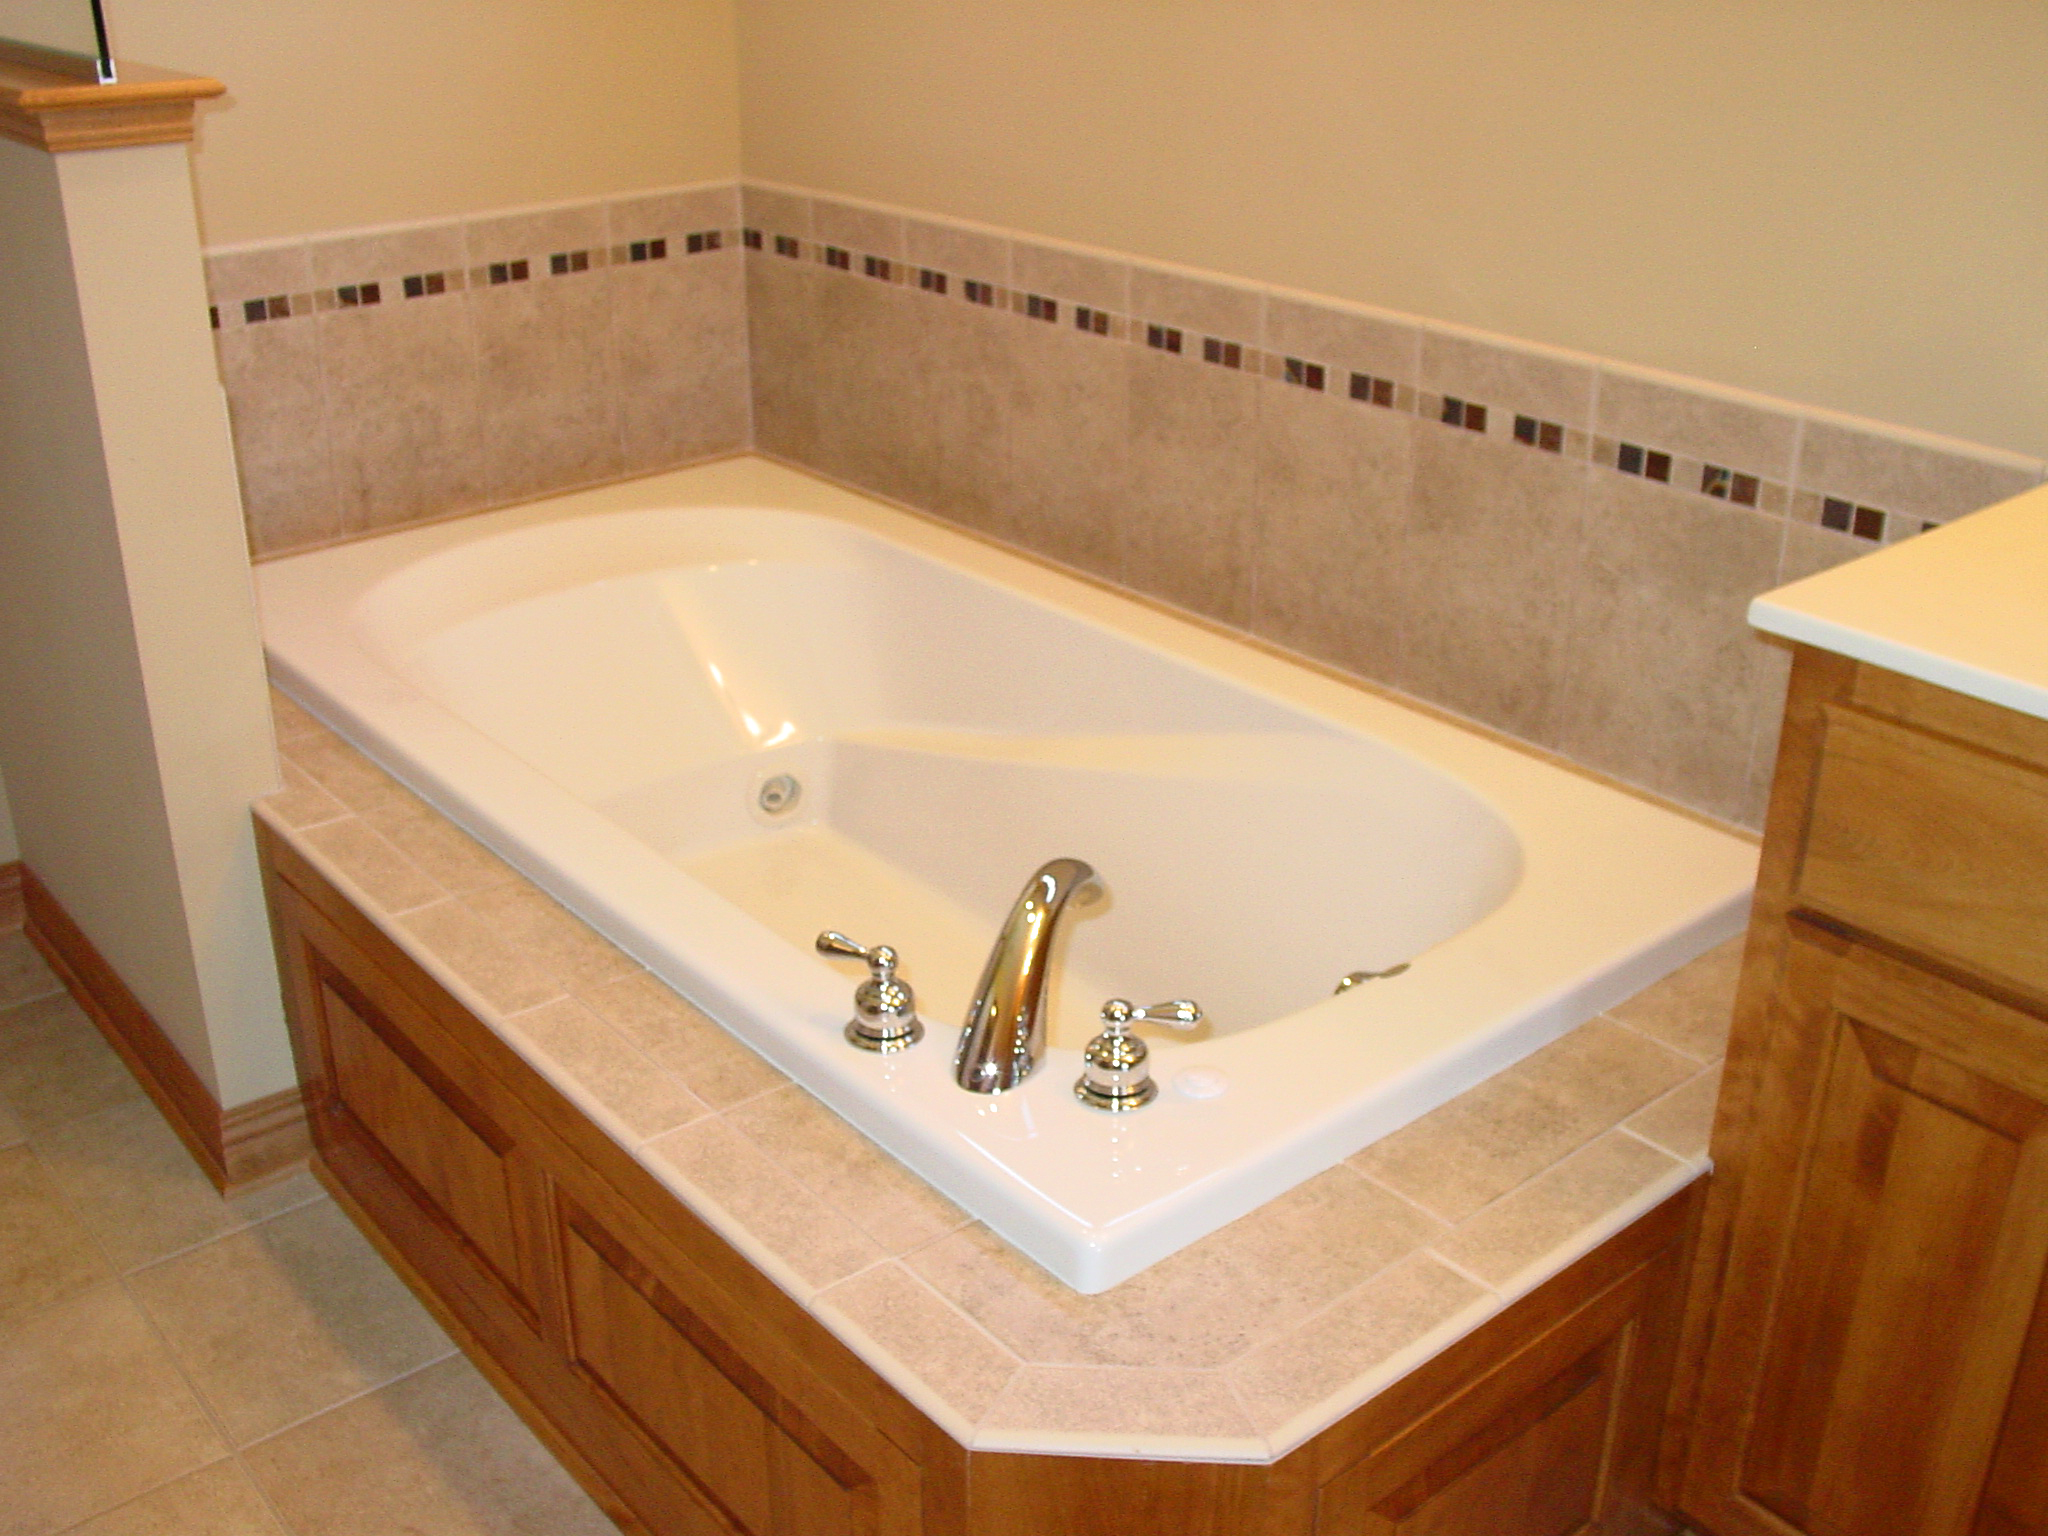 tub surround tile san with flickr andrechinn jose person two b by photos andrec